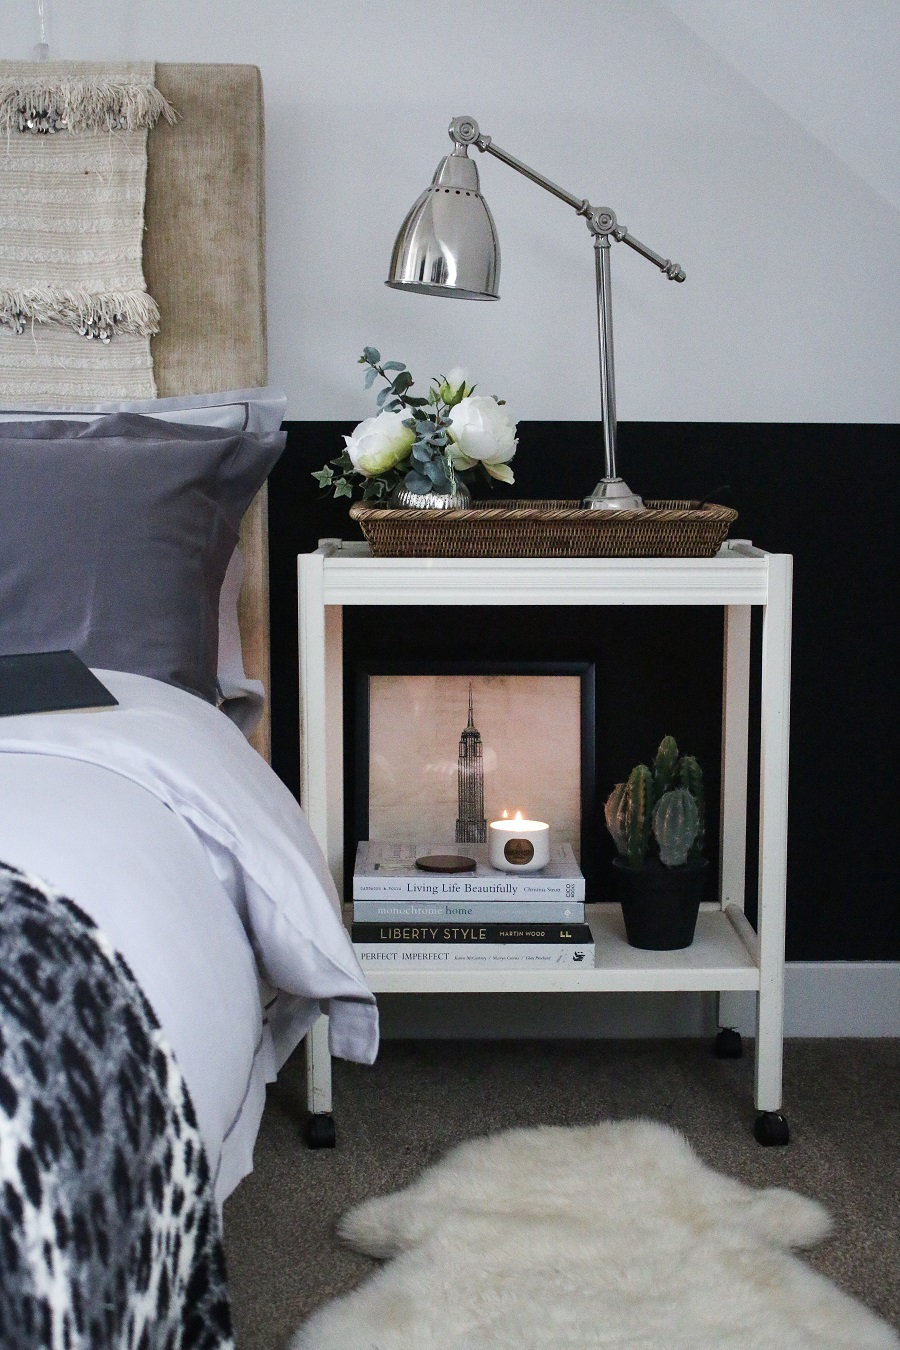 Winter bedroom with black and white half painted walls, bedside table, candle burning